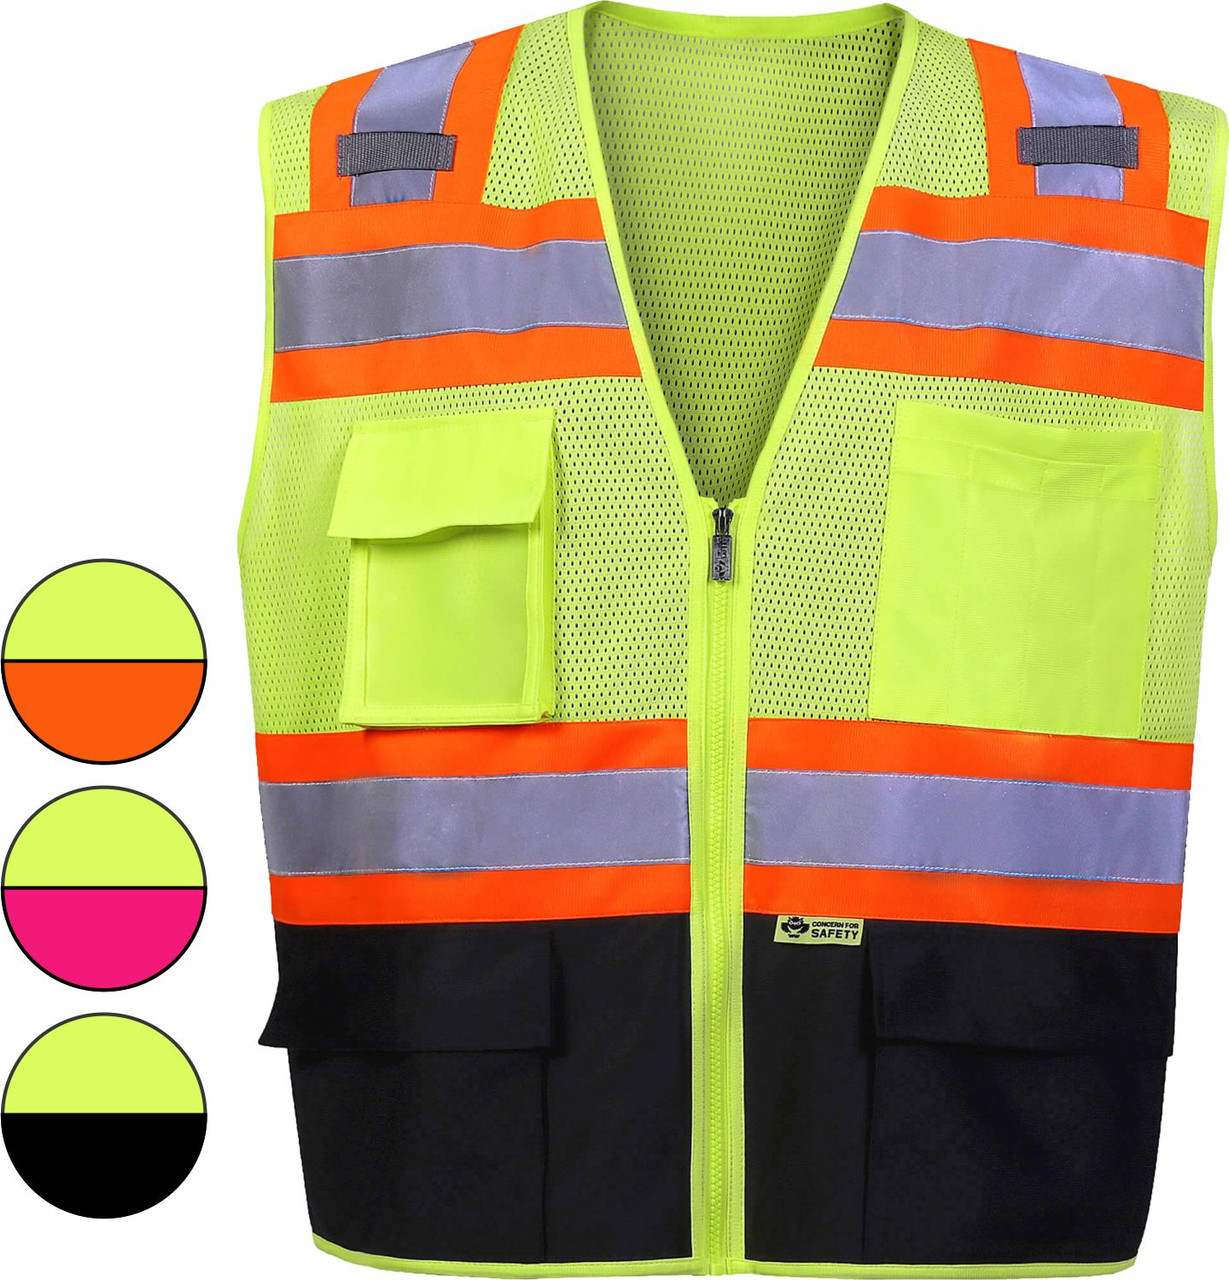 Safety Vest | Black Bottom Safety Vest with contrast color Class 2 | Class Two Safety Vest